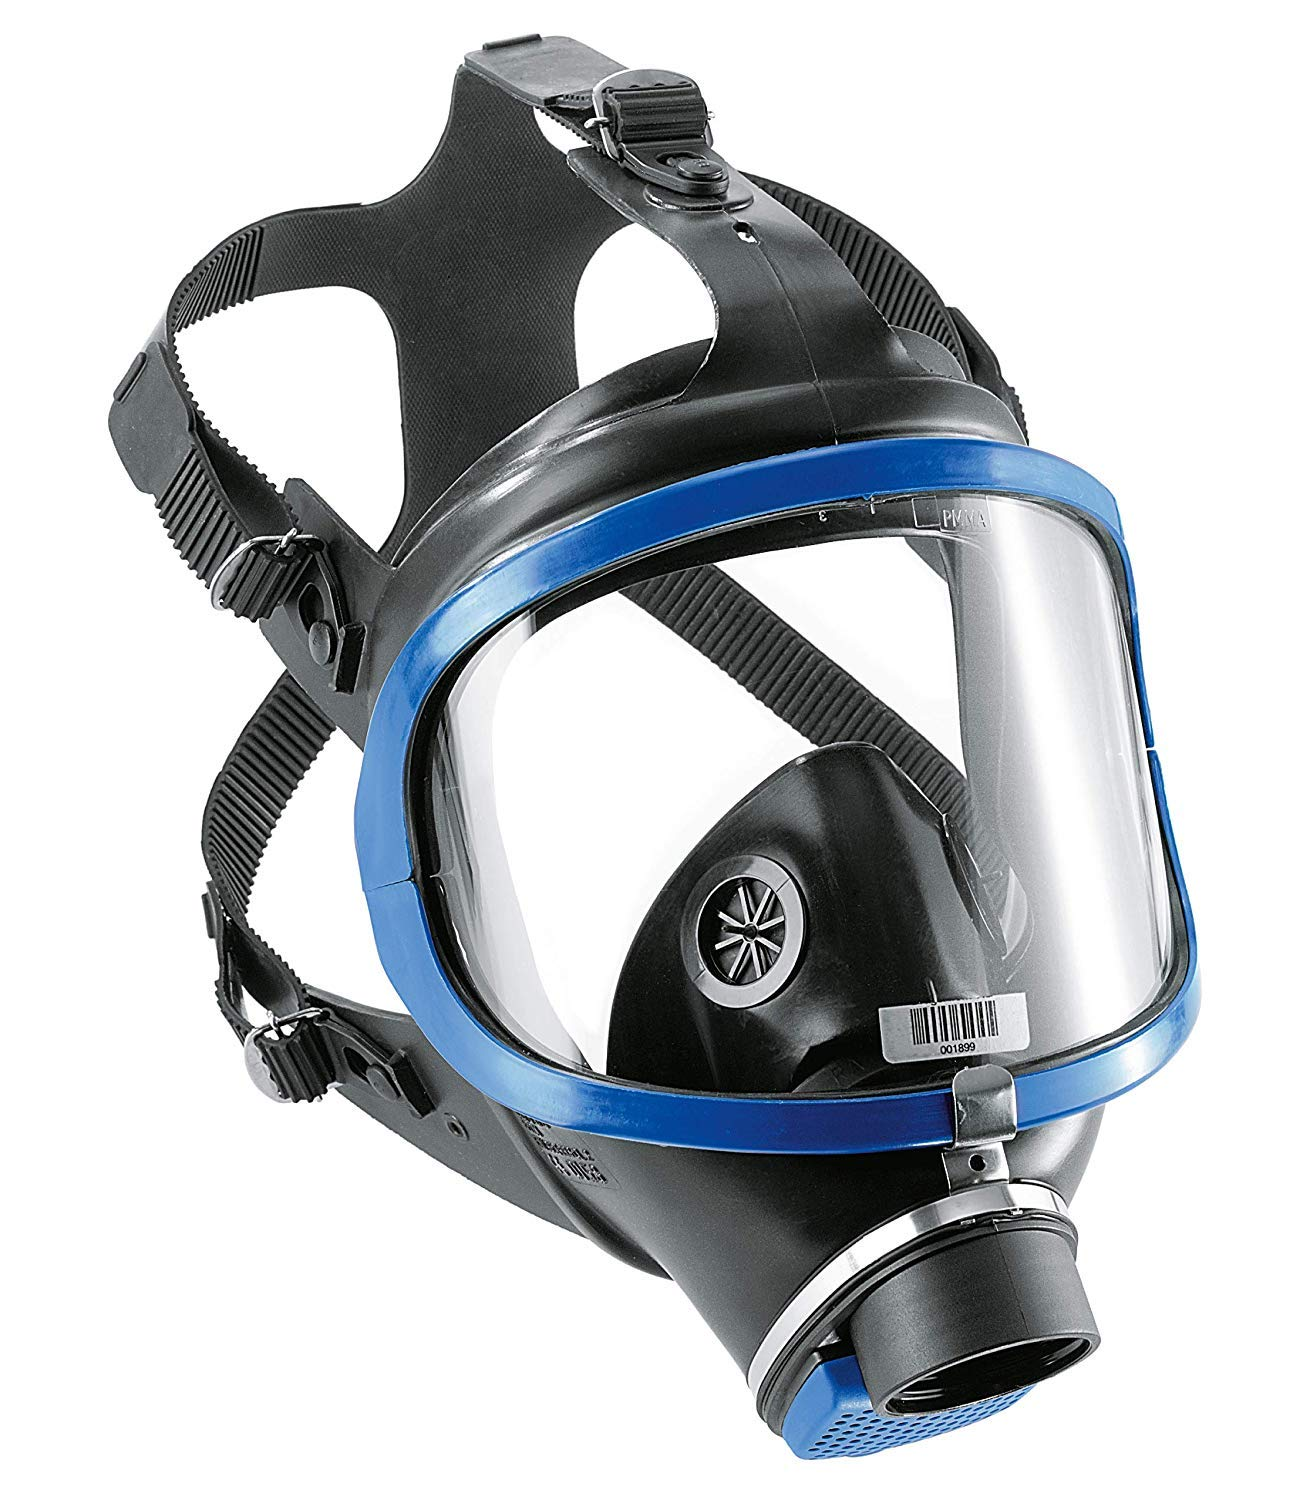 Dräger X-plore 6300Full-Face Respirator Mask | NIOSH Certified | Eye and Respiratory Protection | Anti-Fog | 180° Field of View | Universal Size by Dräger